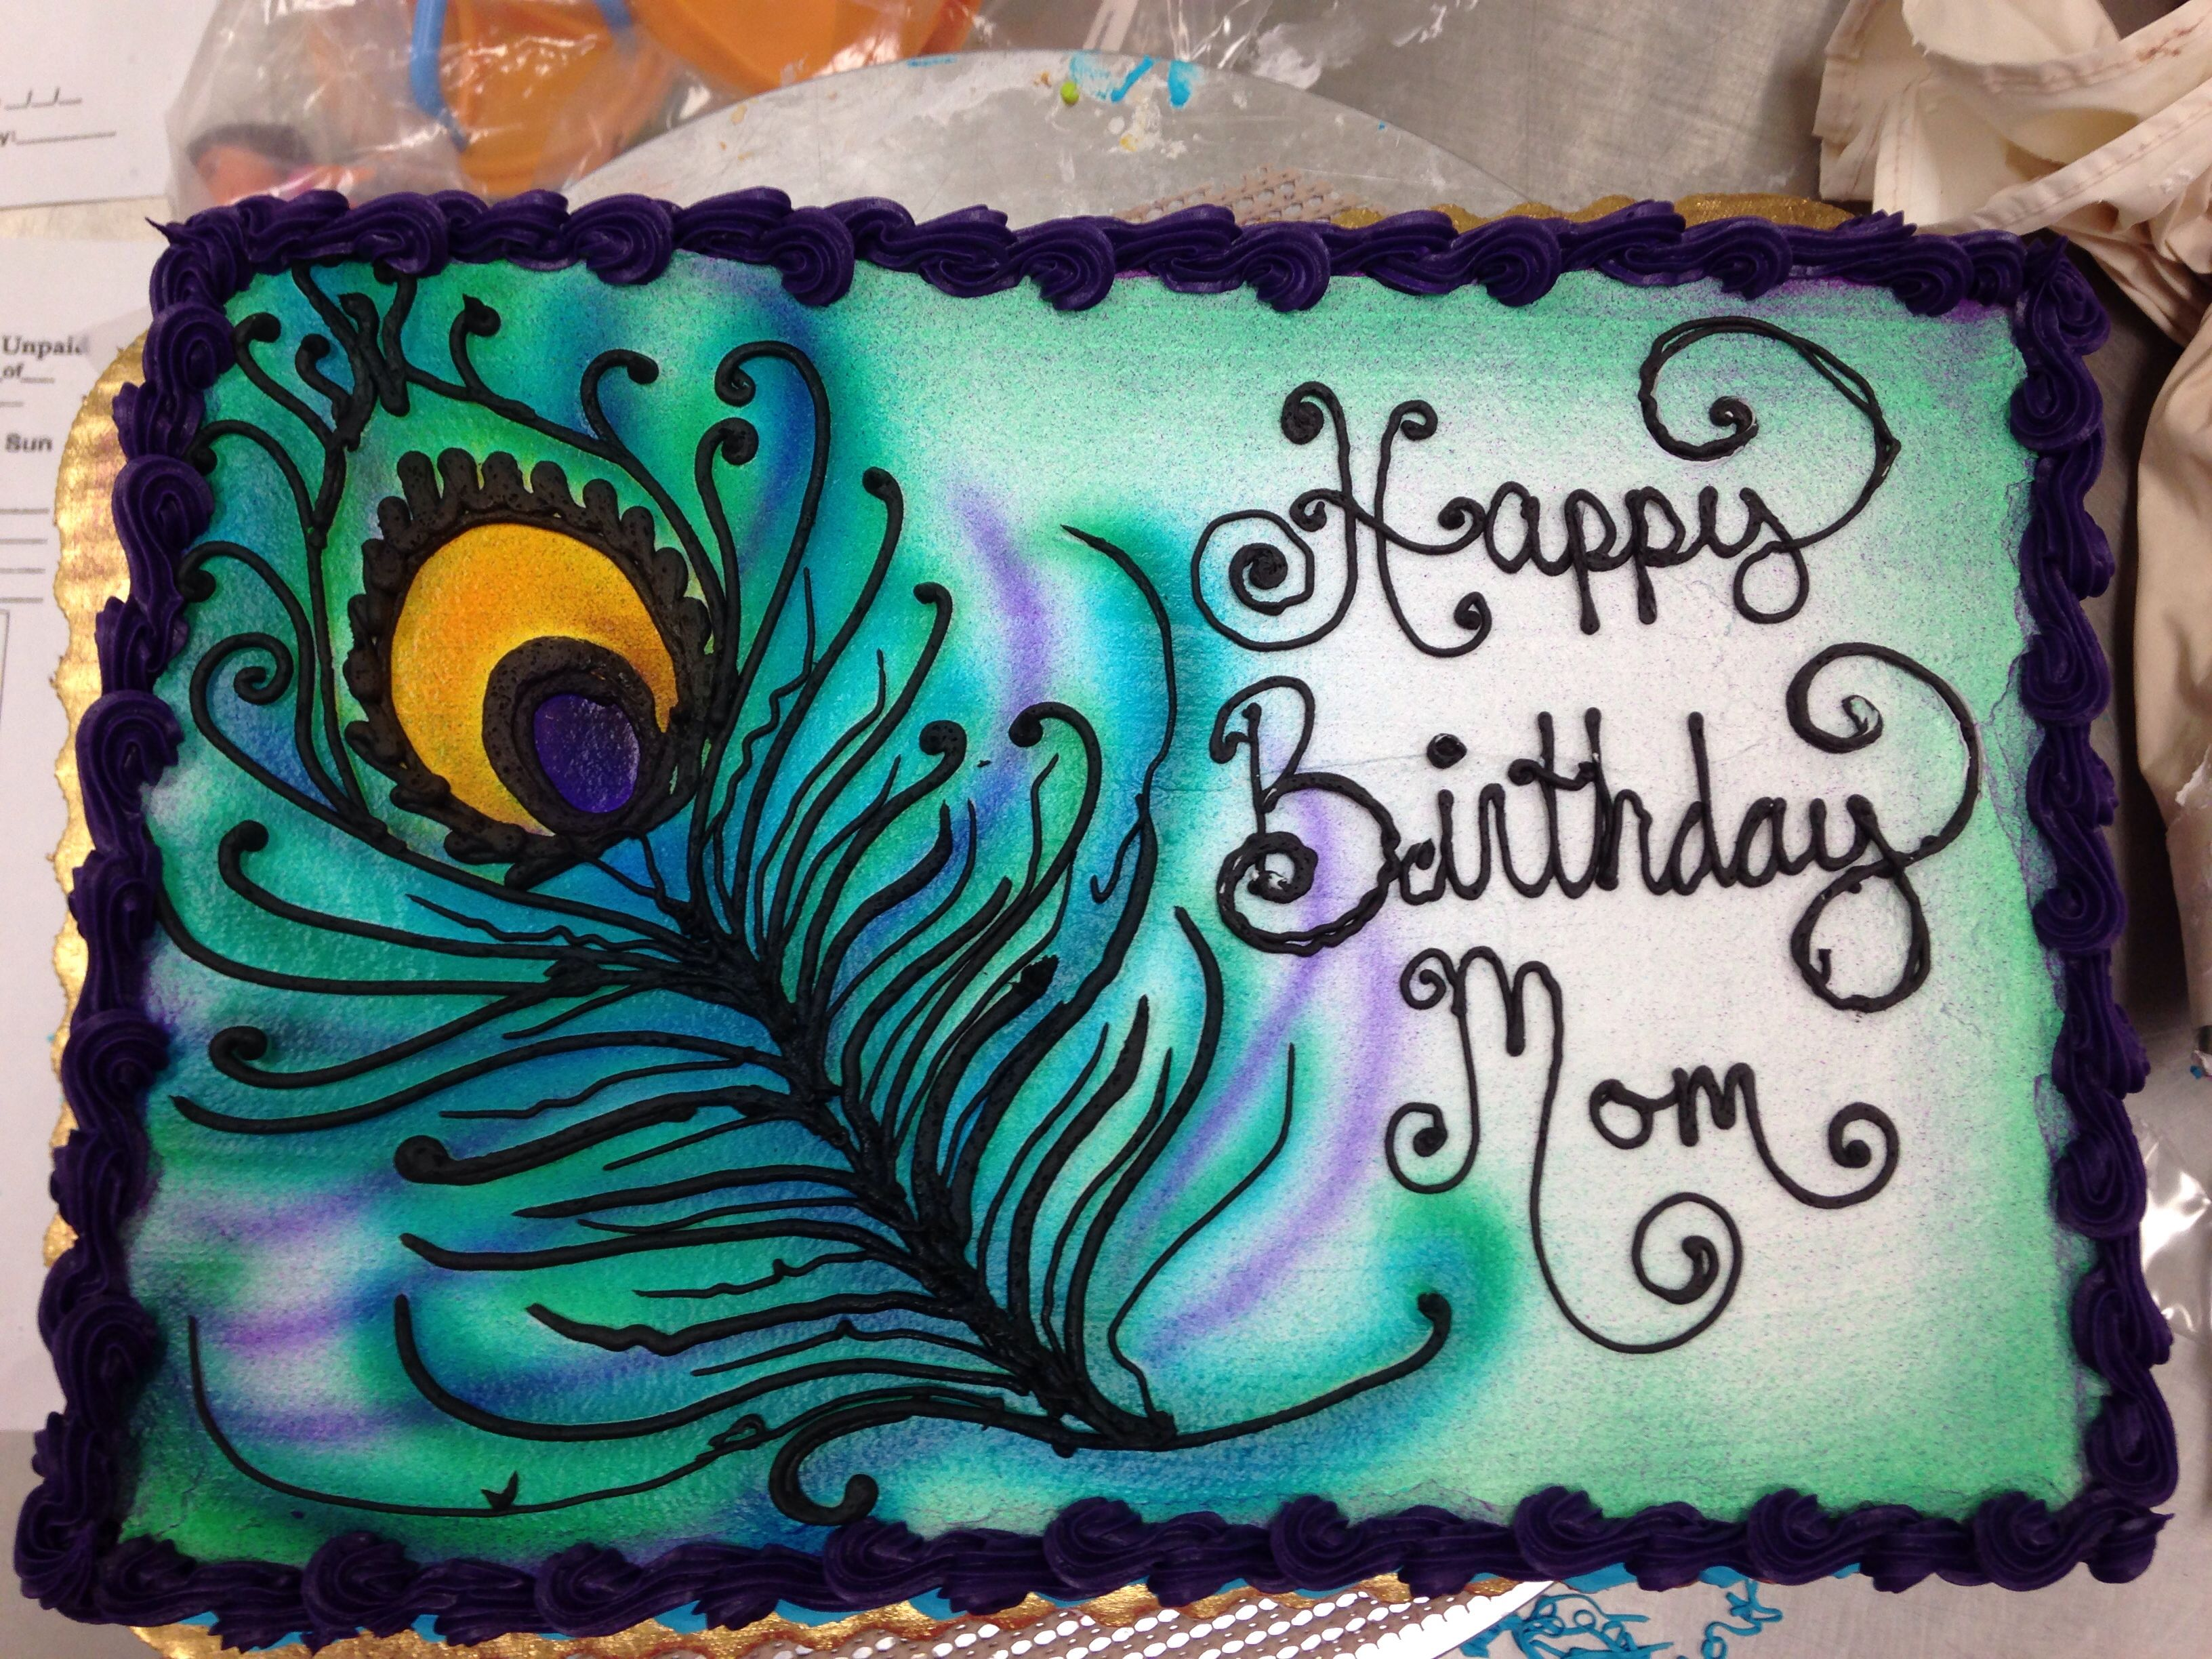 Buttercream Peacock Sheet Cake Not Your Grandmas Cakes - Peacock birthday cake